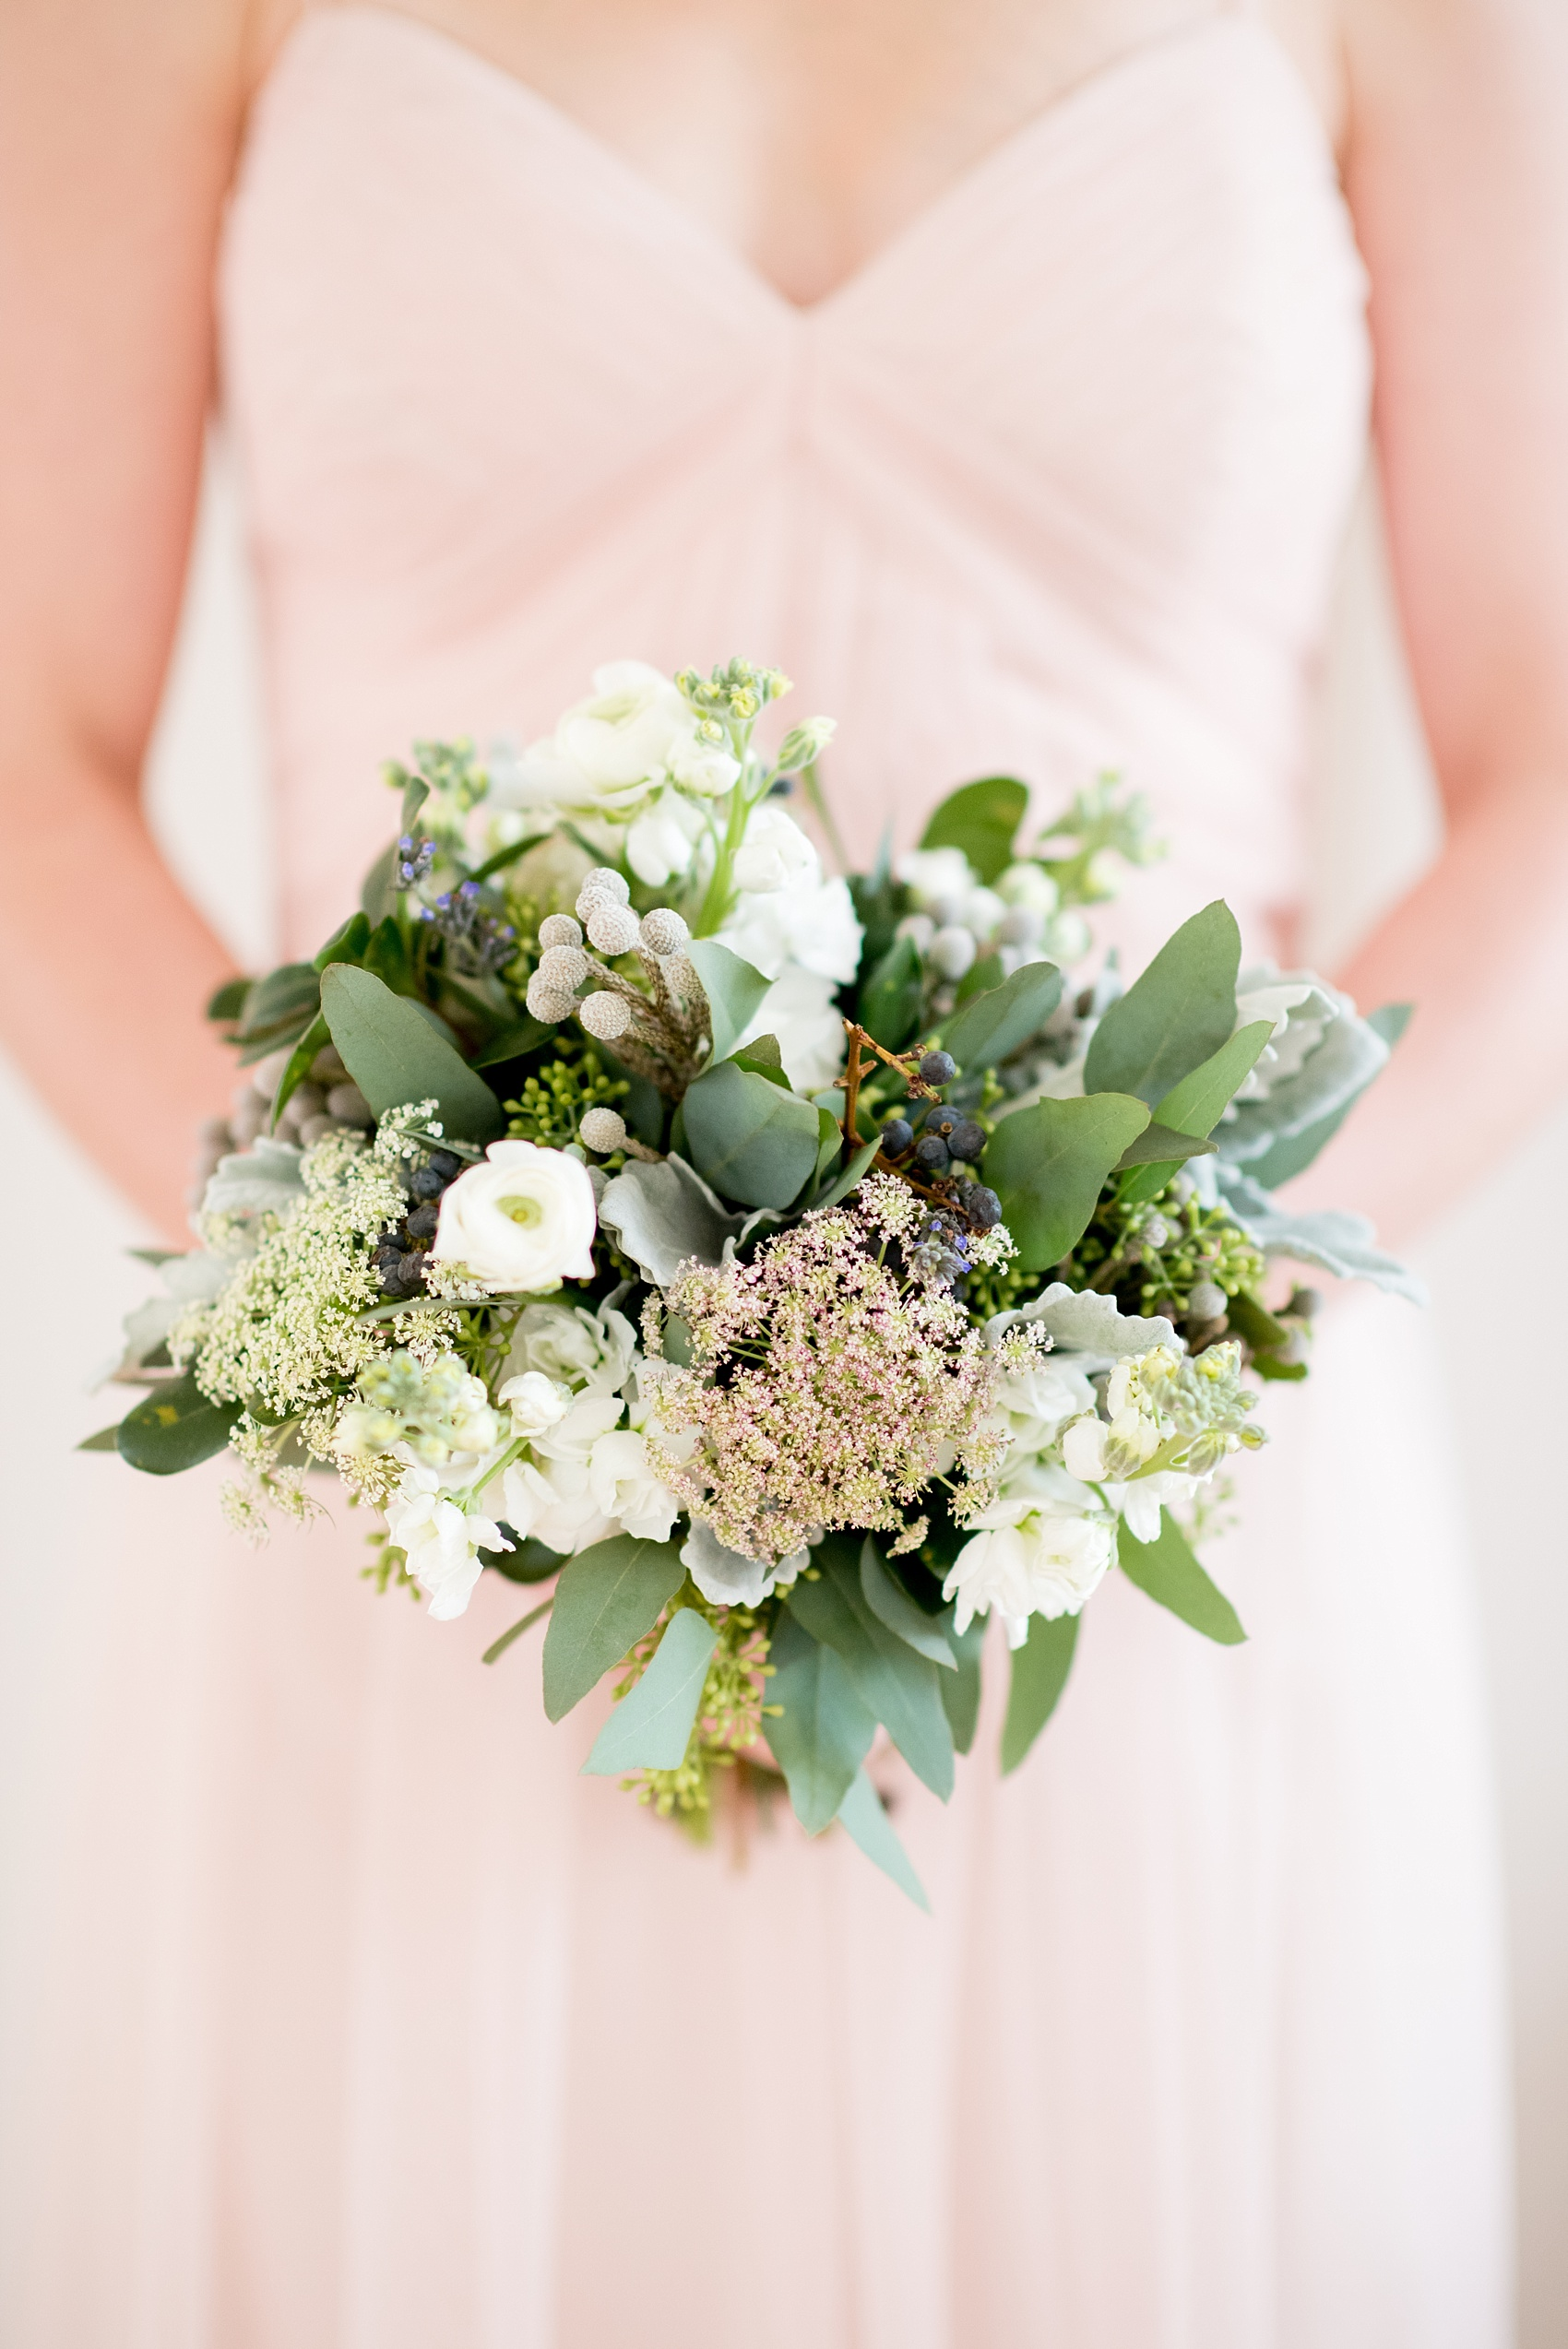 The Glass Box Raleigh wedding photos by Mikkel Paige Photography. Picture of the bridesmaid bouquet of white ranunculus, berries and green eucalyptus.